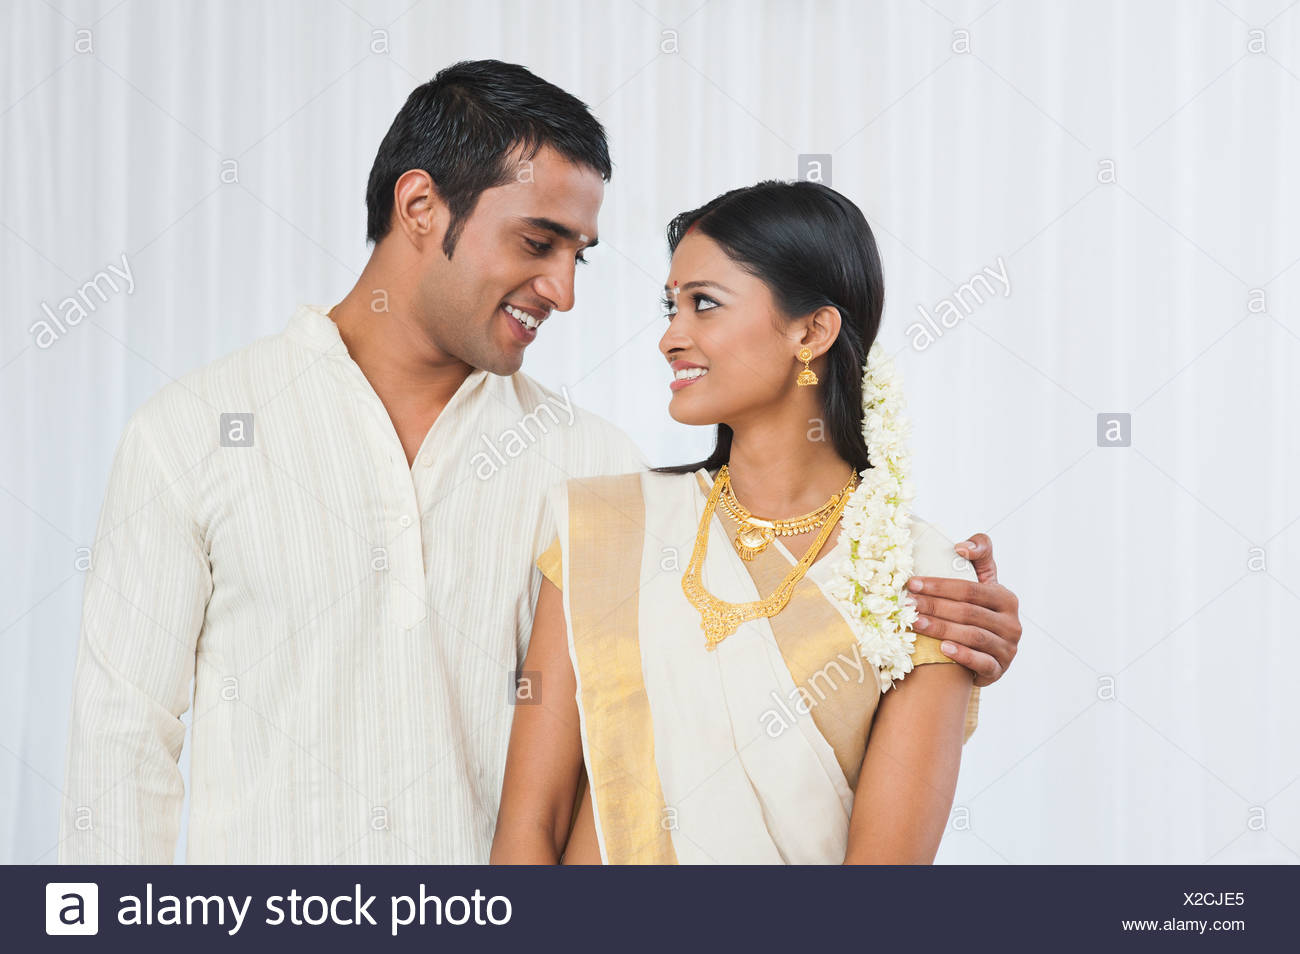 Dating a south indian man